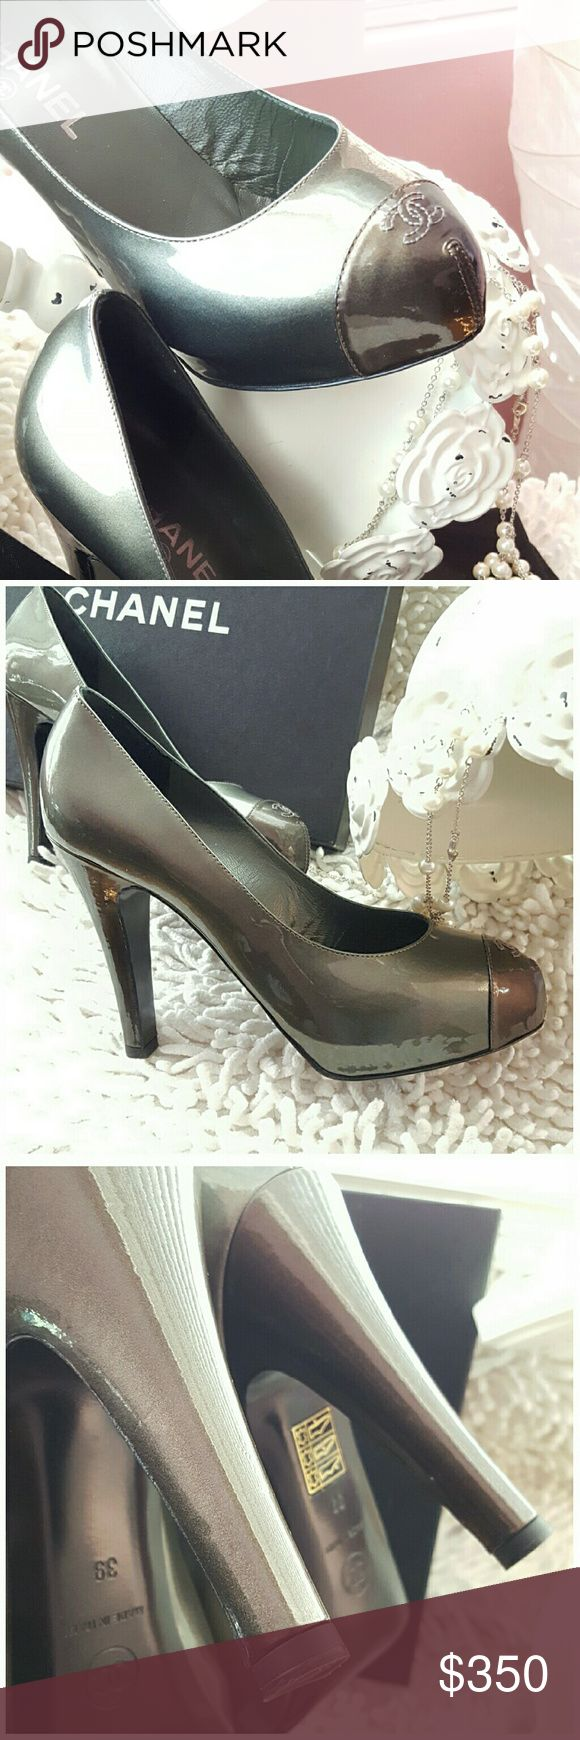 "🌟New Arrival🌟 CHANEL PRICE FIRM GORGEOUS VERSATILE METALLIC PATENT LEATHER PUMPS ROUND TOP PUMPS BRONZE CAP-TOE WITH SIGNATURE 'CC' STITCHING ACCENTS AND COVERED HEELS. INCLUDES BOX & DUST COVER. LIGHT WEAR ON SOLES SMALL SCUFFS ON HEELS NOT VISIBLE WHEN WEARING.. HEEL HEIGHT 4.25"" WEARS LIKE A 31/2"" HEEL COLOR IS METALLIC BRONZE AND DEEP GUNMETAL CHANEL 1/2 Size SMALLER 39=US 8 CHANEL Shoes"